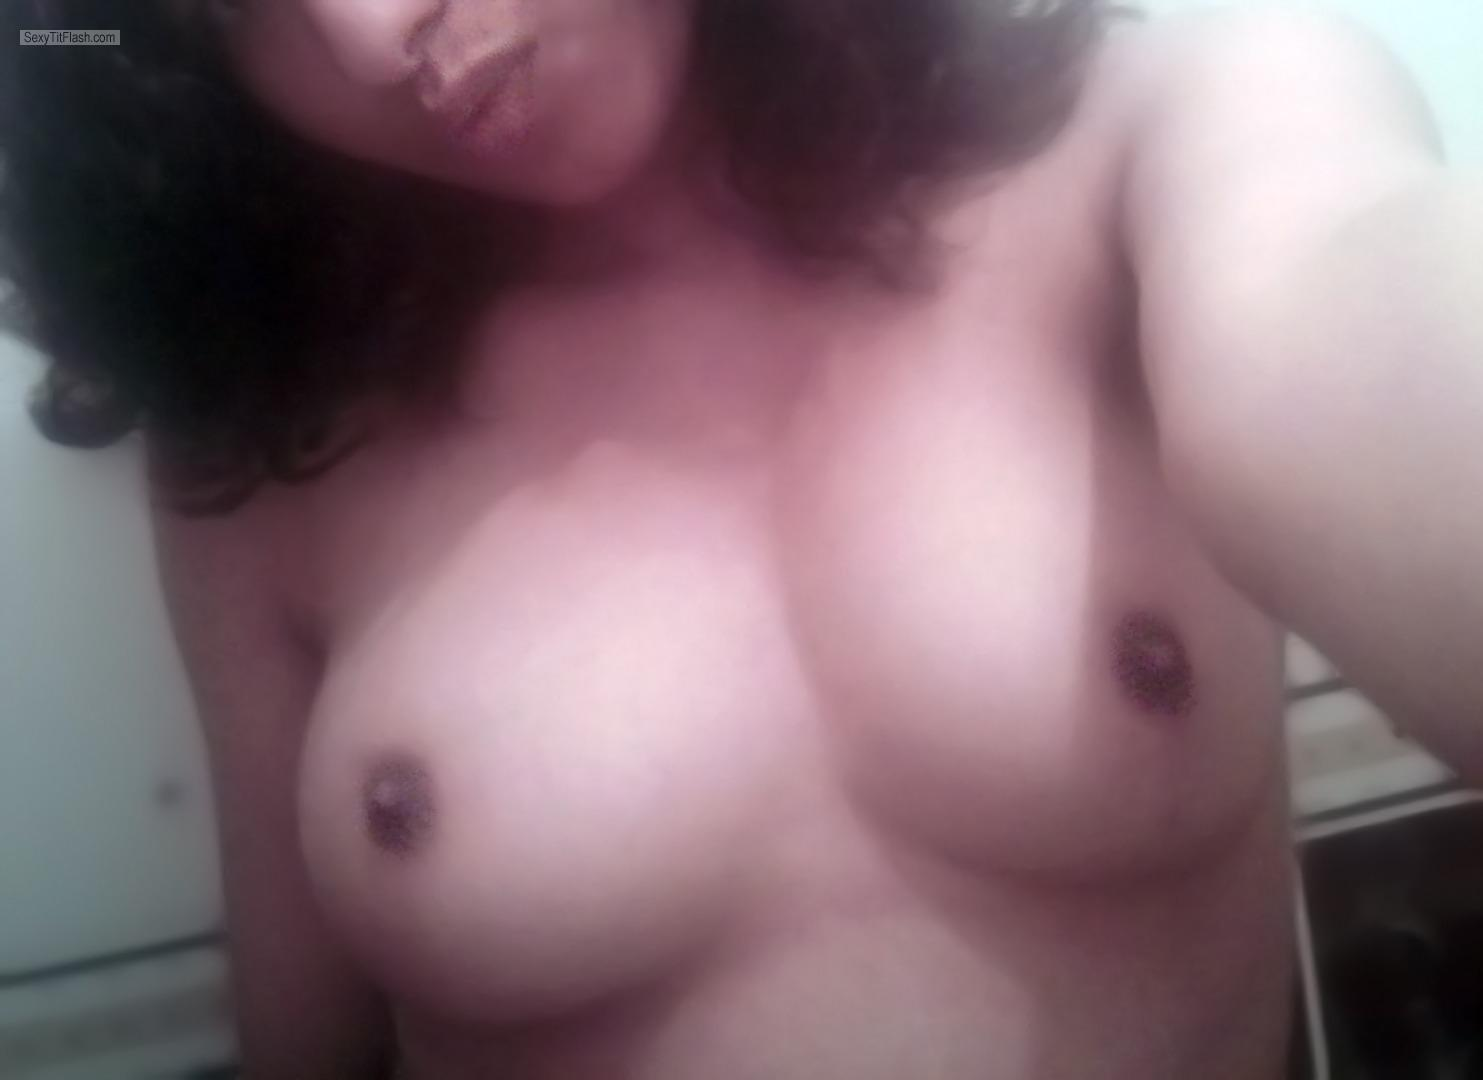 My Medium Tits Topless Selfie by Nina69nina